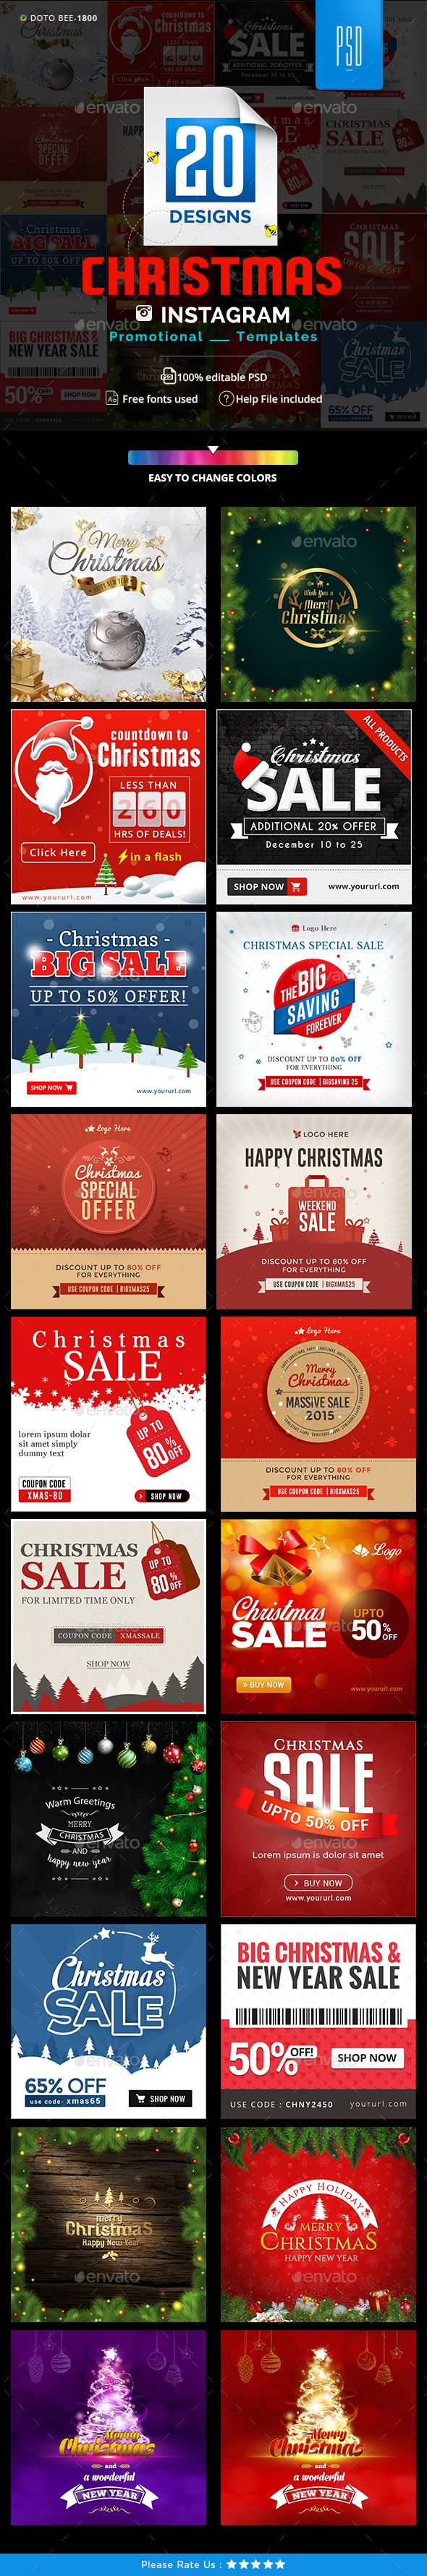 Christmas Instagram Ads Banner Design Templates 20 Designs Miscellaneous Social Media Design Template Psd